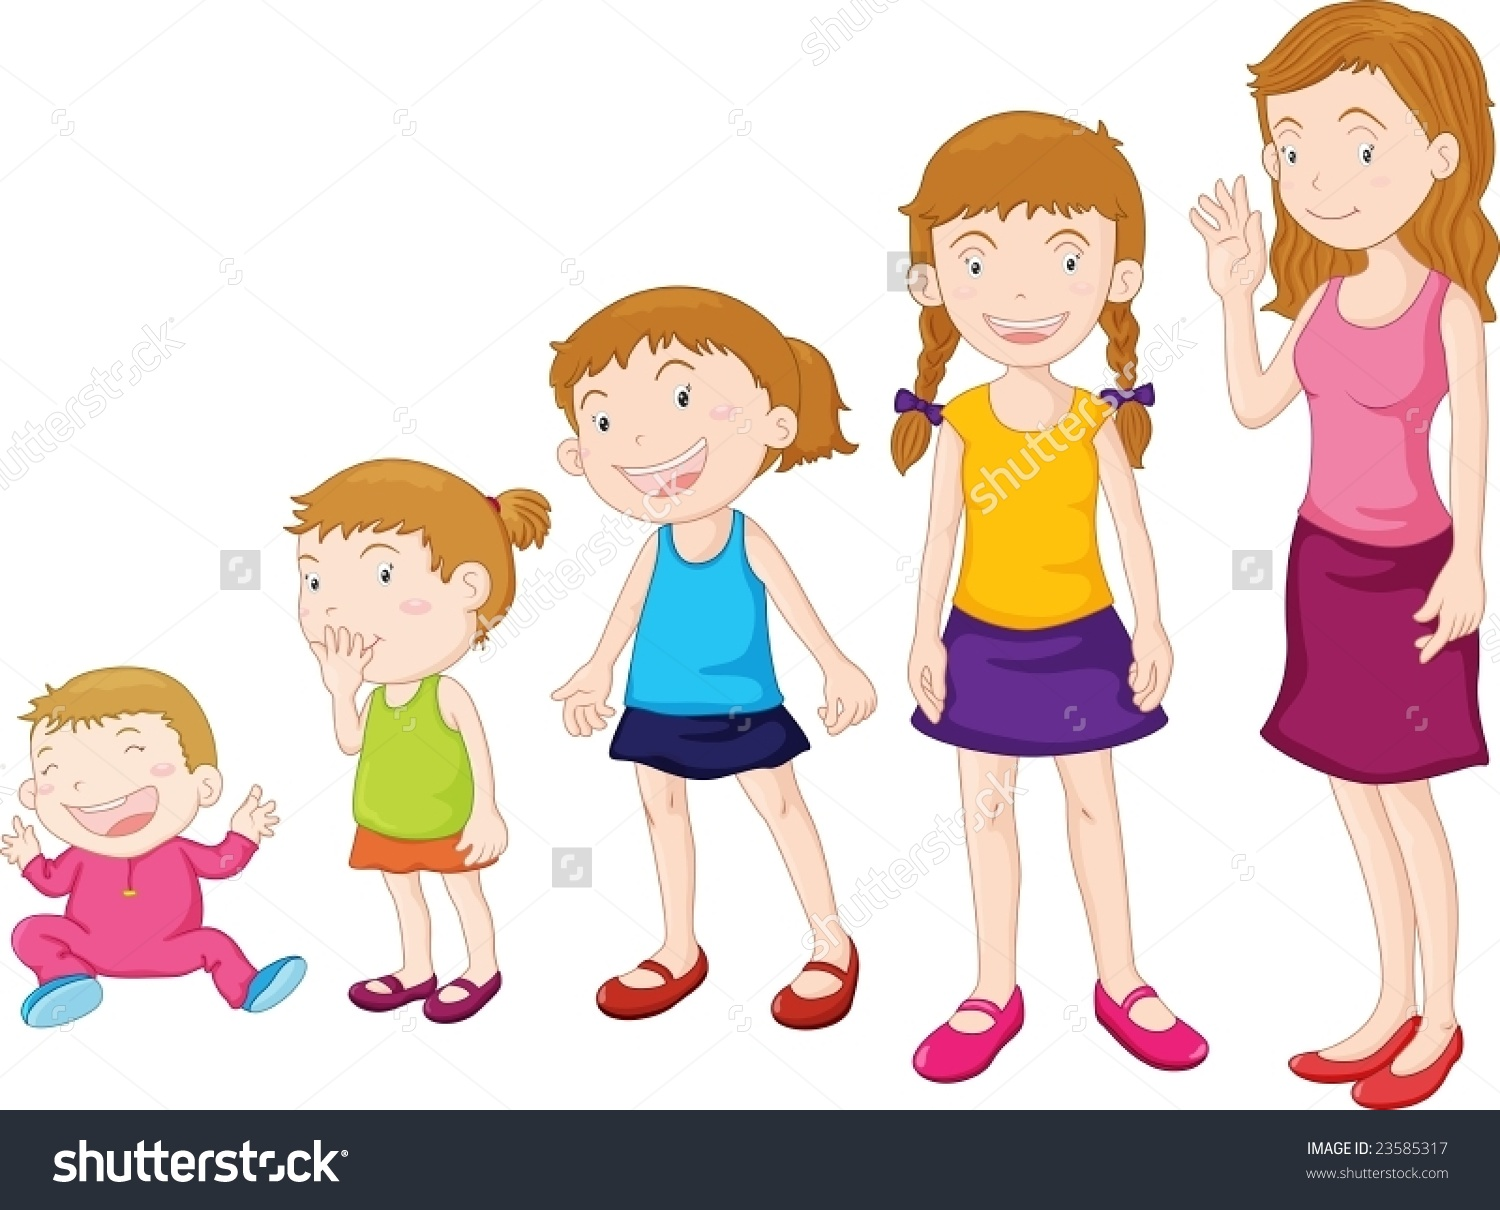 Quotes About Girls Growing Up 66 Quotes